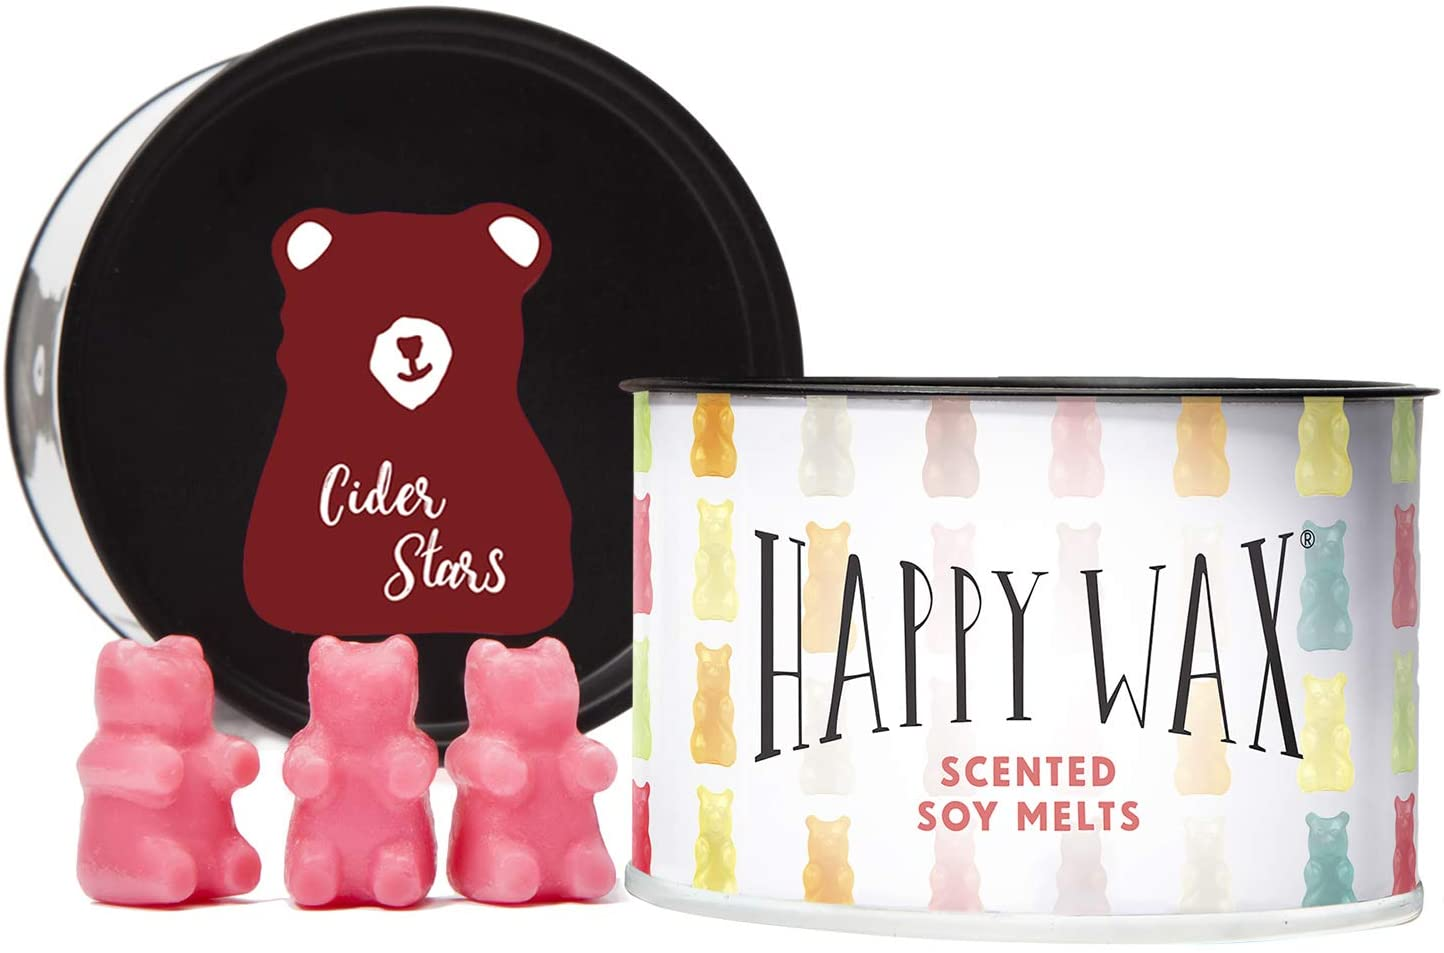 Happy Wax - 3.6 Oz Tin - Apple Cider Stars Wax Melts - Scented Wax Melts Made with All Natural Soy Wax Infused with Essential Oils - Fun Shapes Make The Perfect Christmas Wax melt Gift!